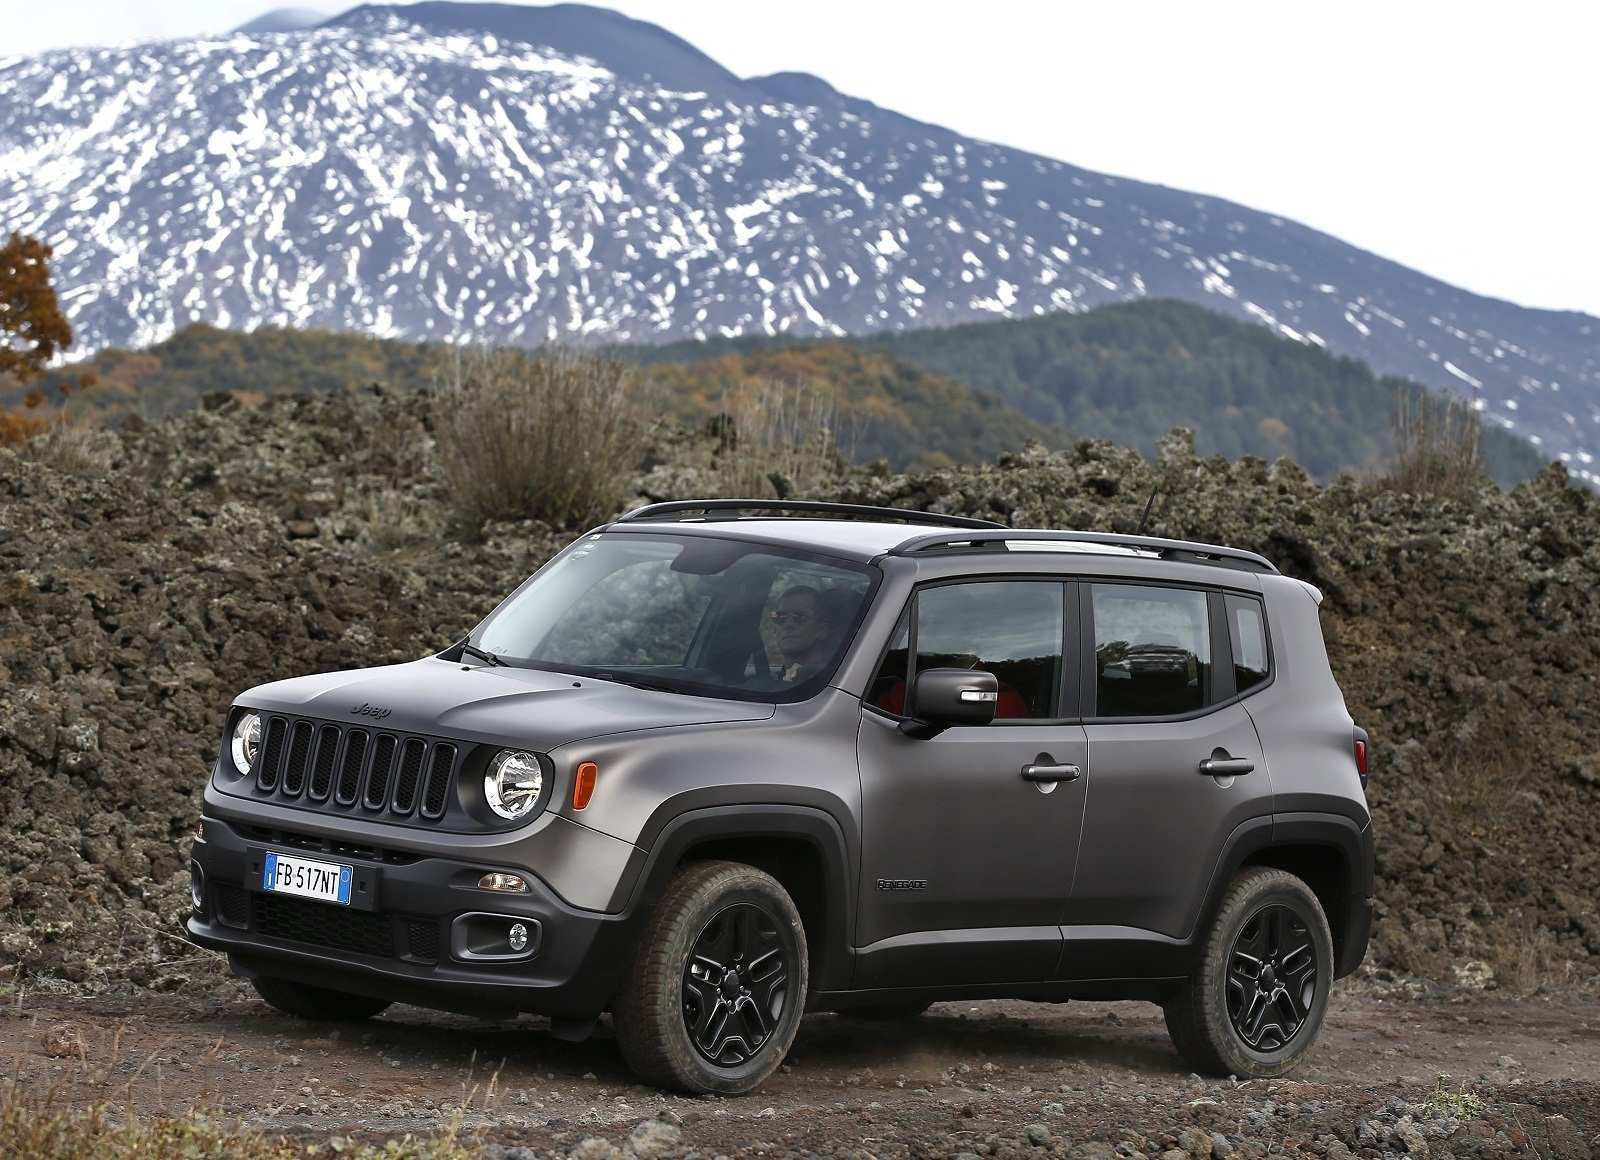 32 Gallery of Jeep Renegade 2020 Wallpaper with Jeep Renegade 2020